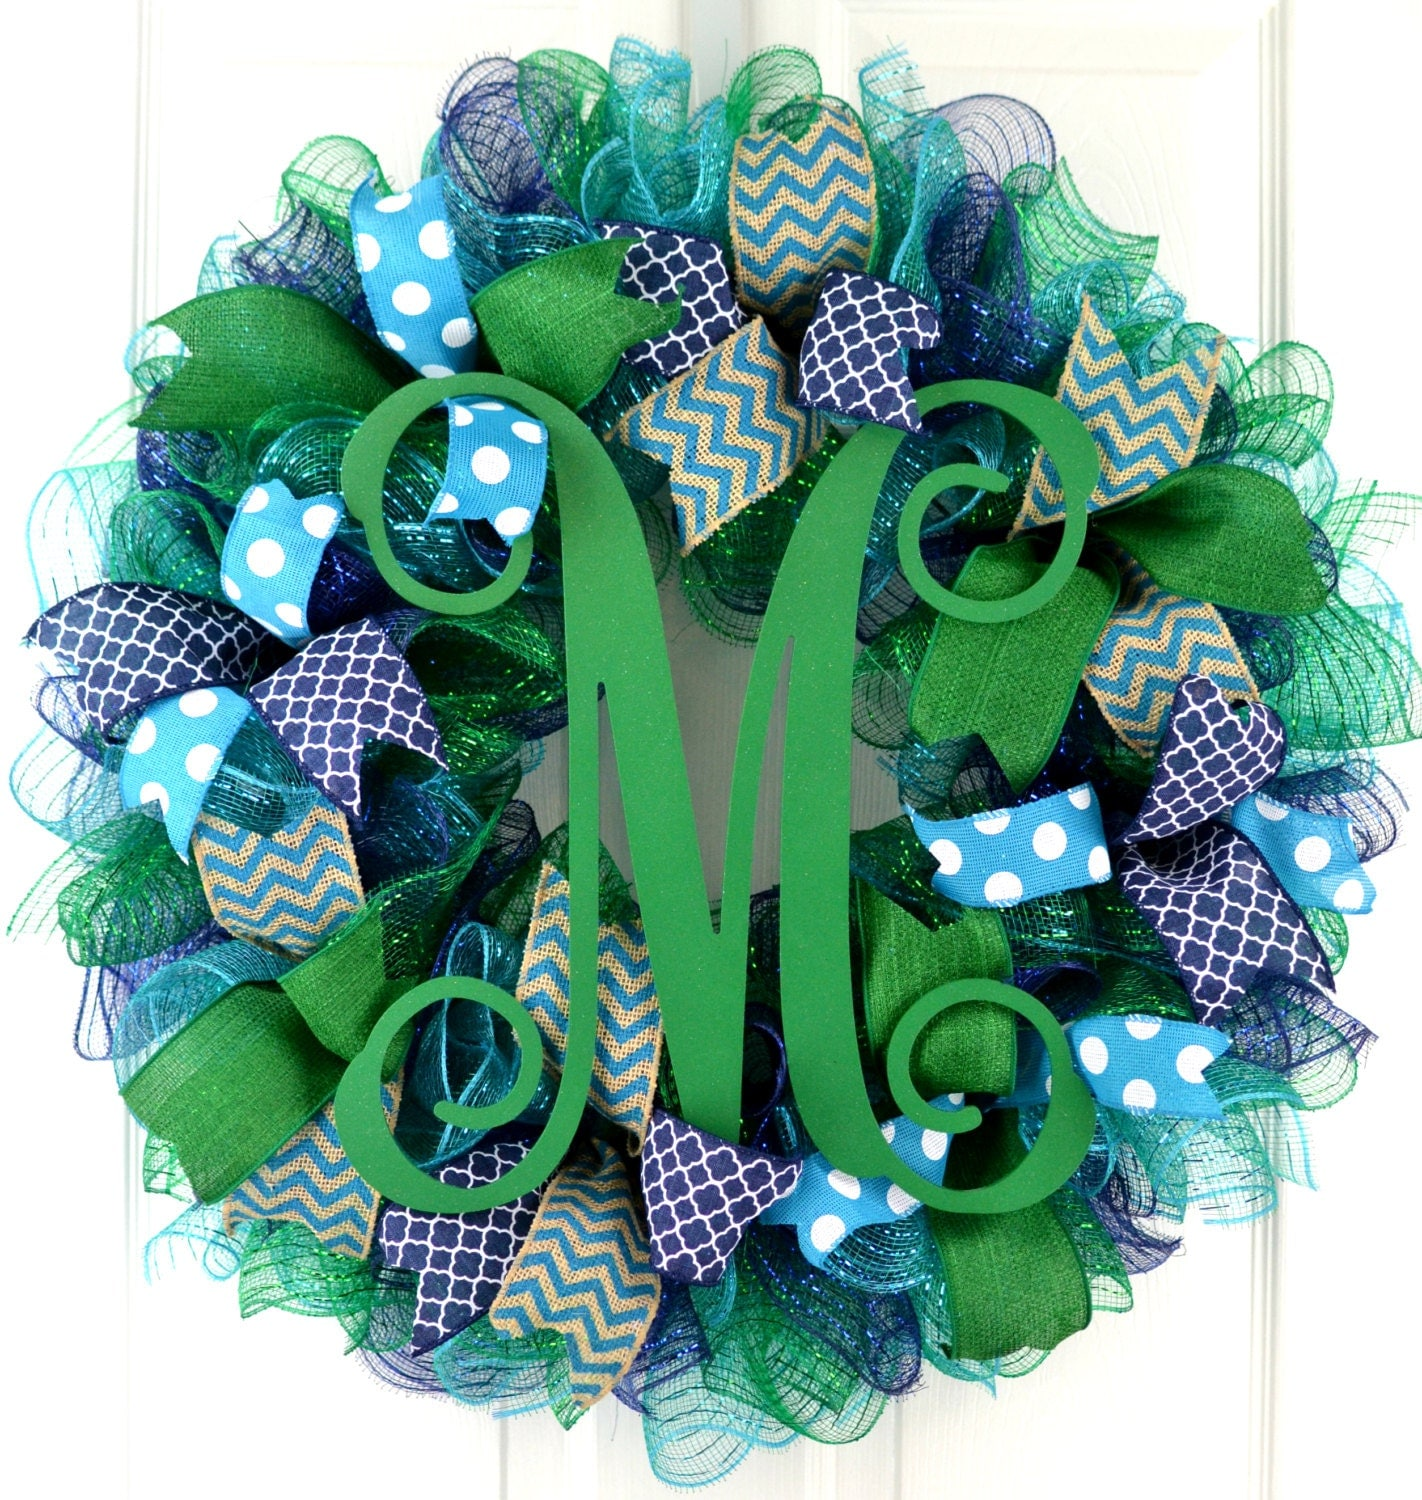 Front door wreath - Everyday wreath - Monogram wreath - Navy blue wreath - Year round wreath - Kelly green wreath - Monogram door wreath